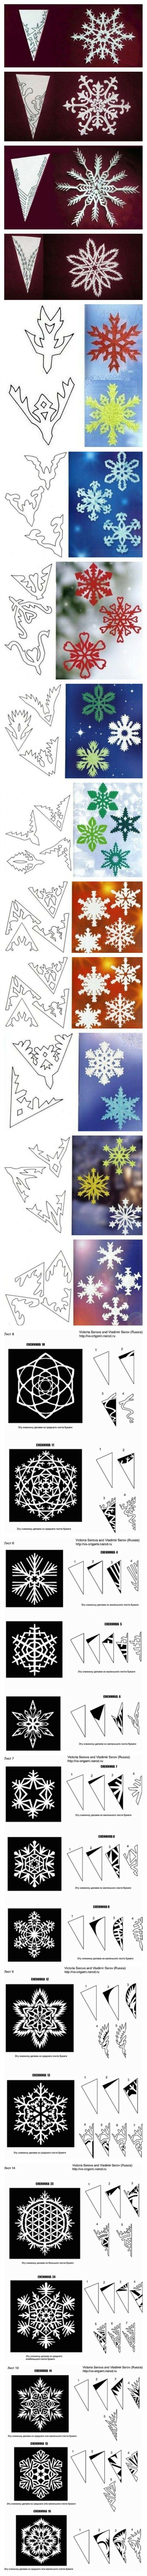 snowflake guide I SO want to try this!